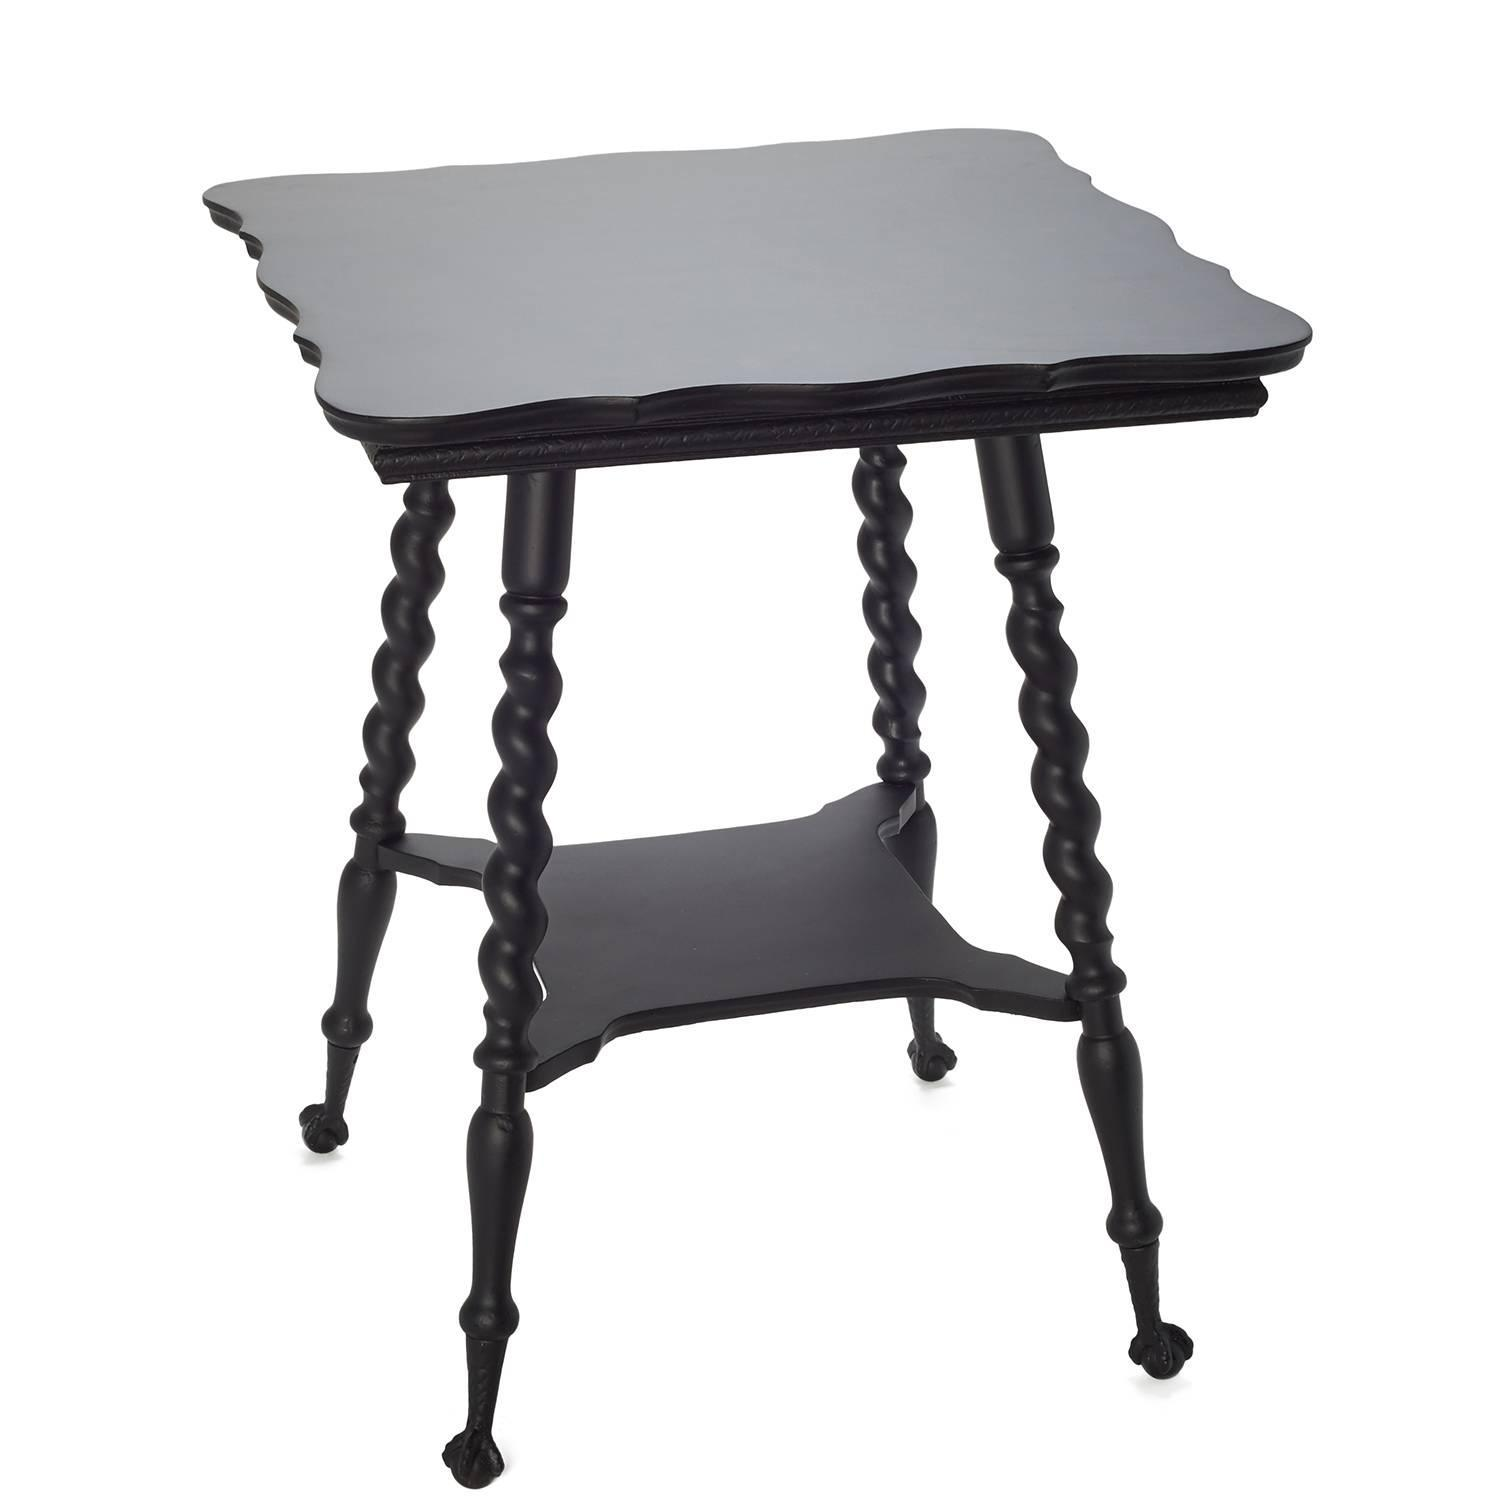 19th century victorian black claw foot side table for sale at 1stdibs. Black Bedroom Furniture Sets. Home Design Ideas